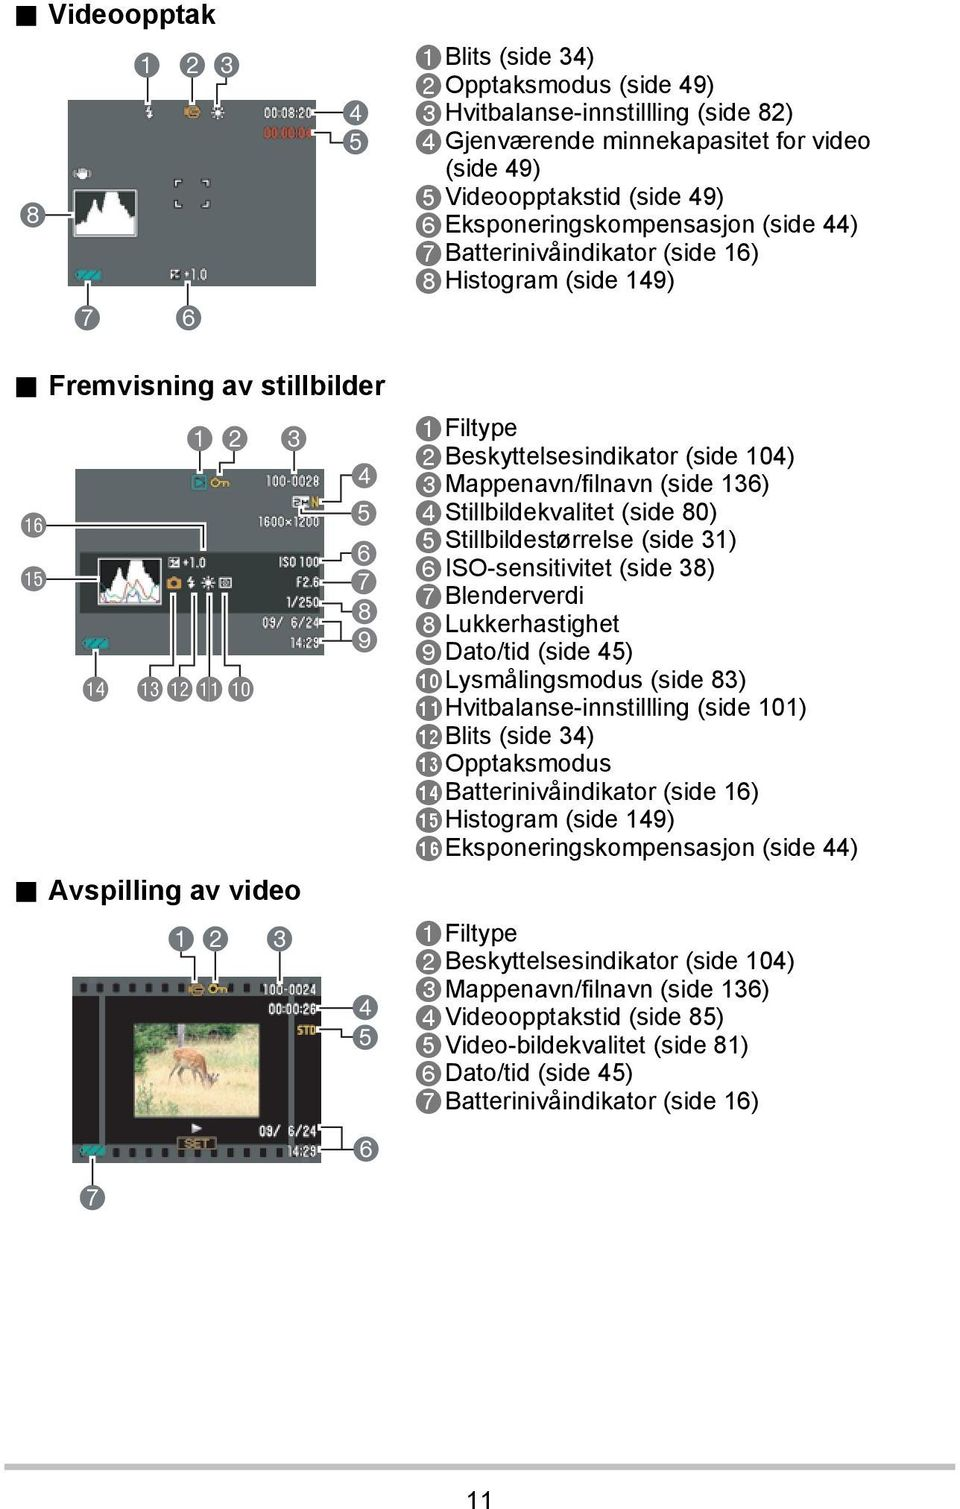 Avspilling av video 7 12 3 4 5 6 7 8 9 4 5 6 1Filtype 2Beskyttelsesindikator (side 104) 3Mappenavn/filnavn (side 136) 4Stillbildekvalitet (side 80) 5Stillbildestørrelse (side 31) 6ISO-sensitivitet